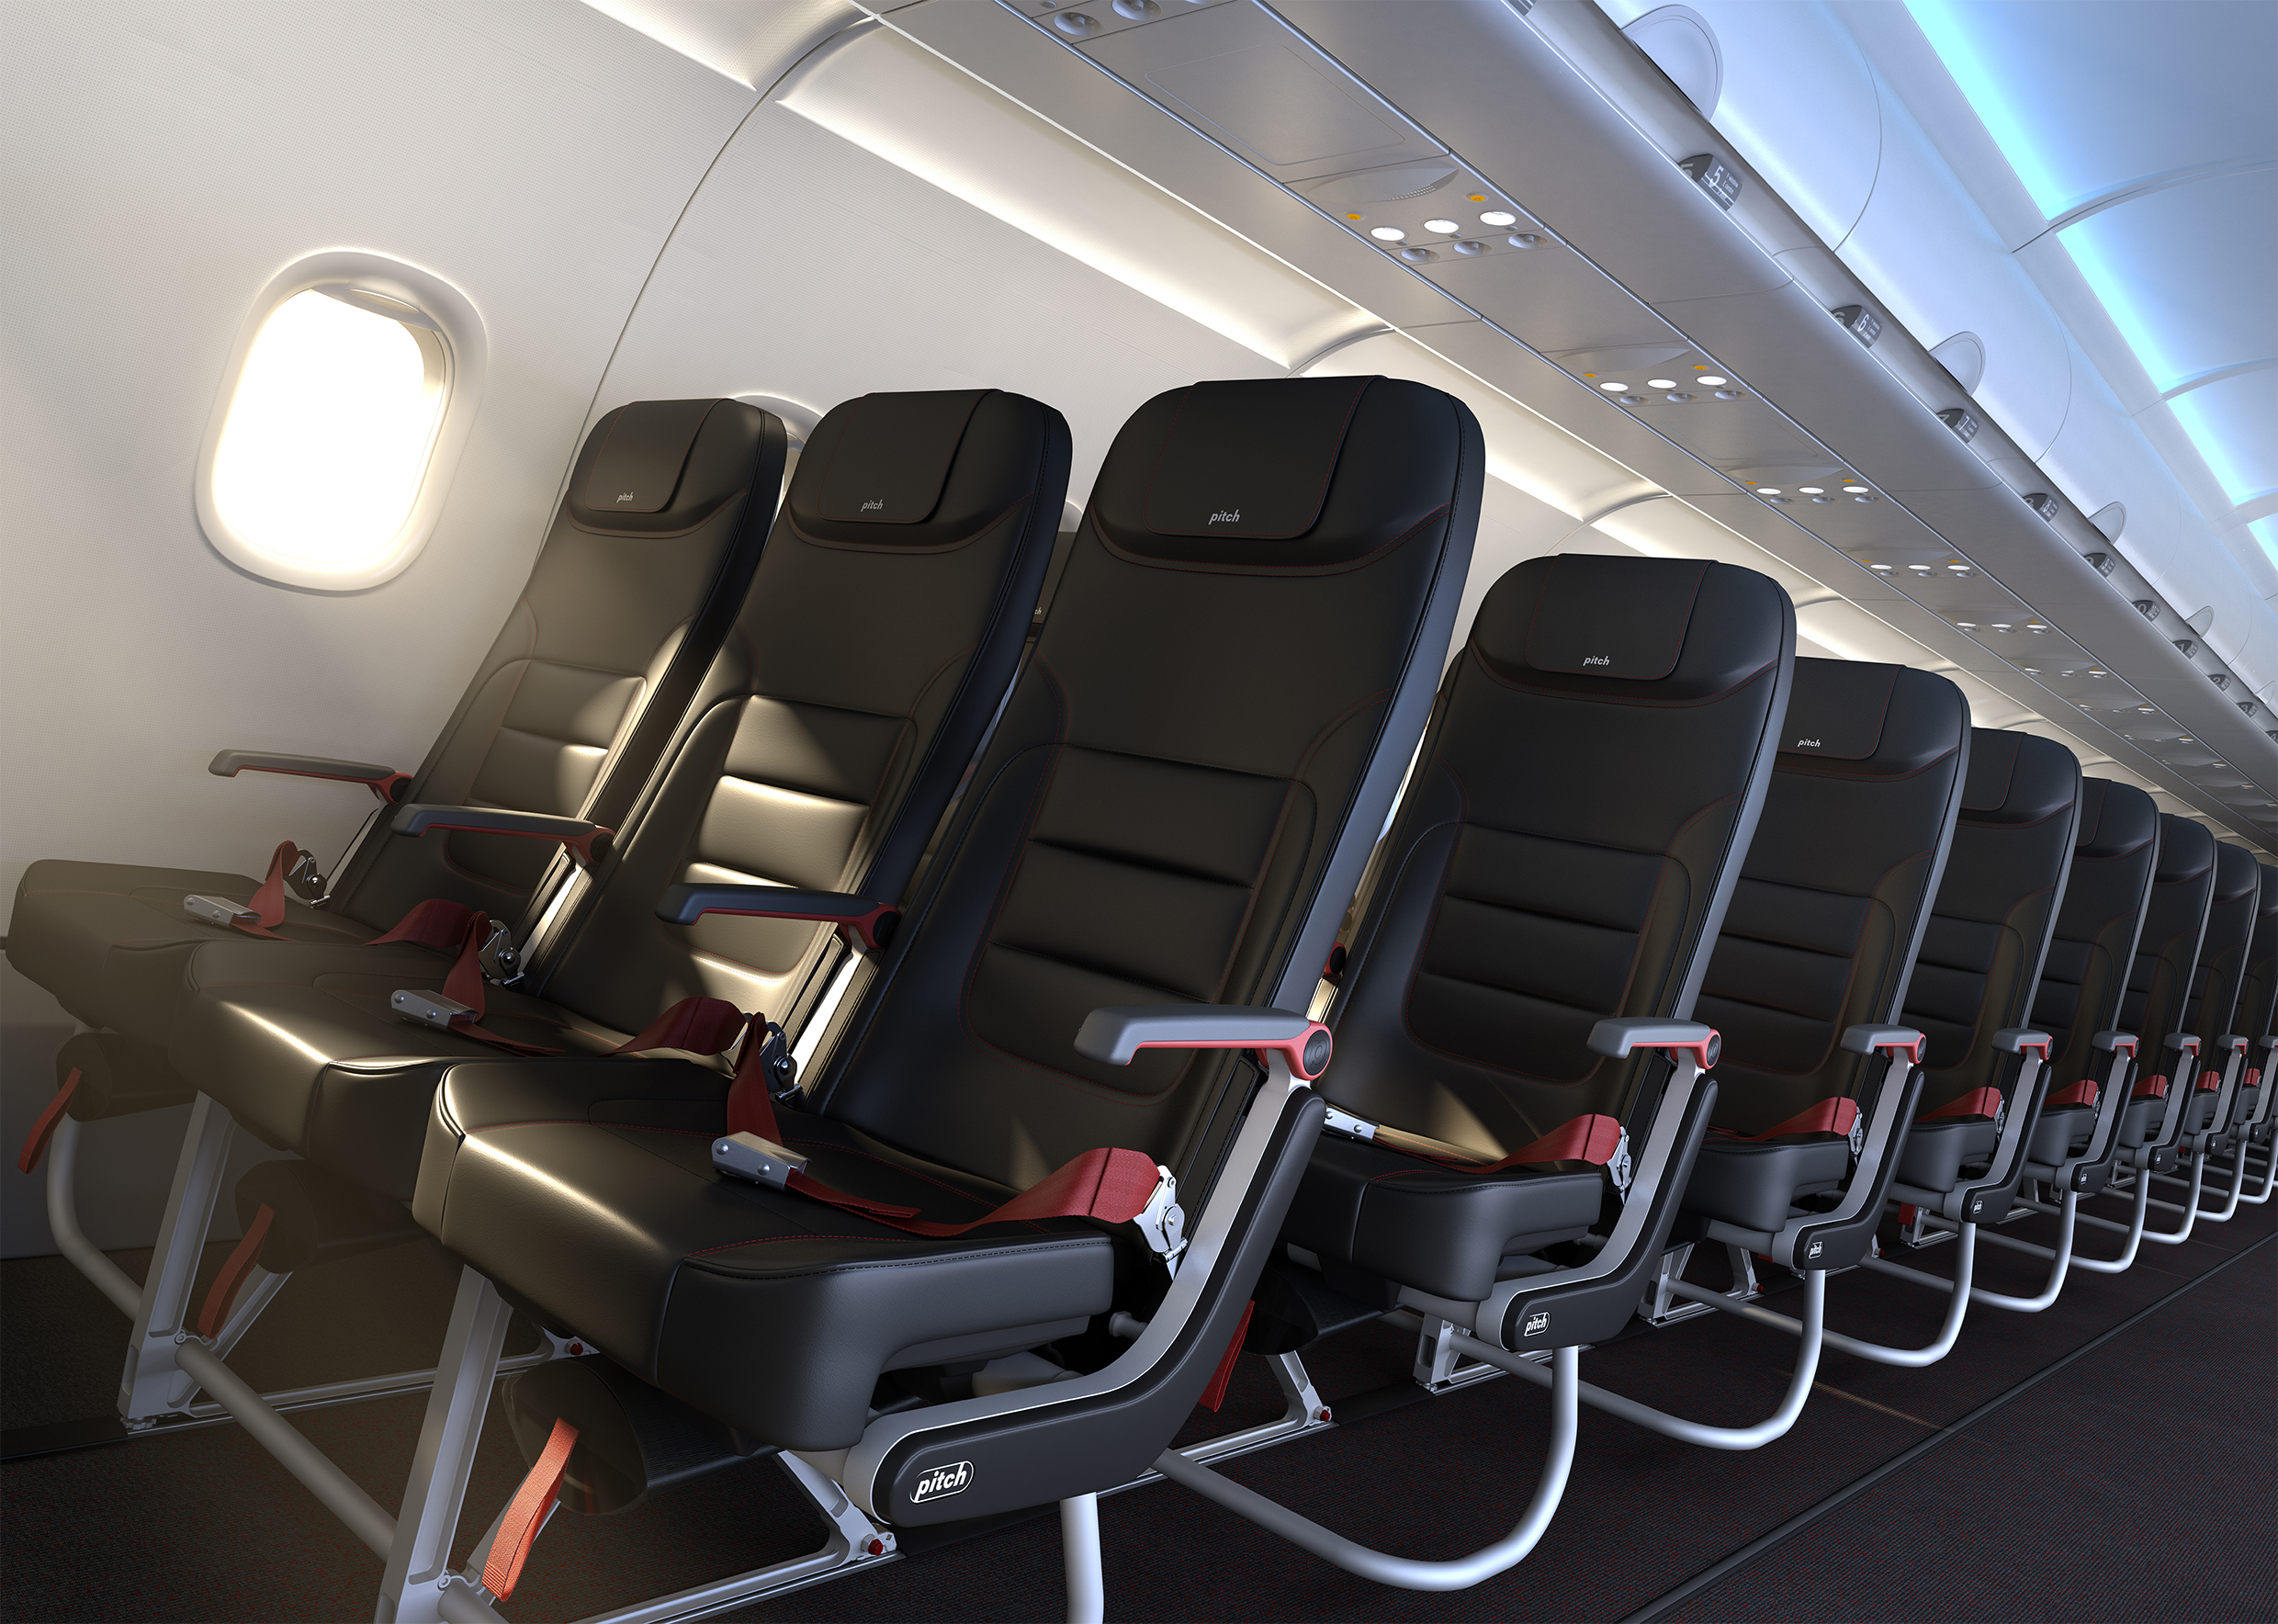 Pitch Aircraft Seating